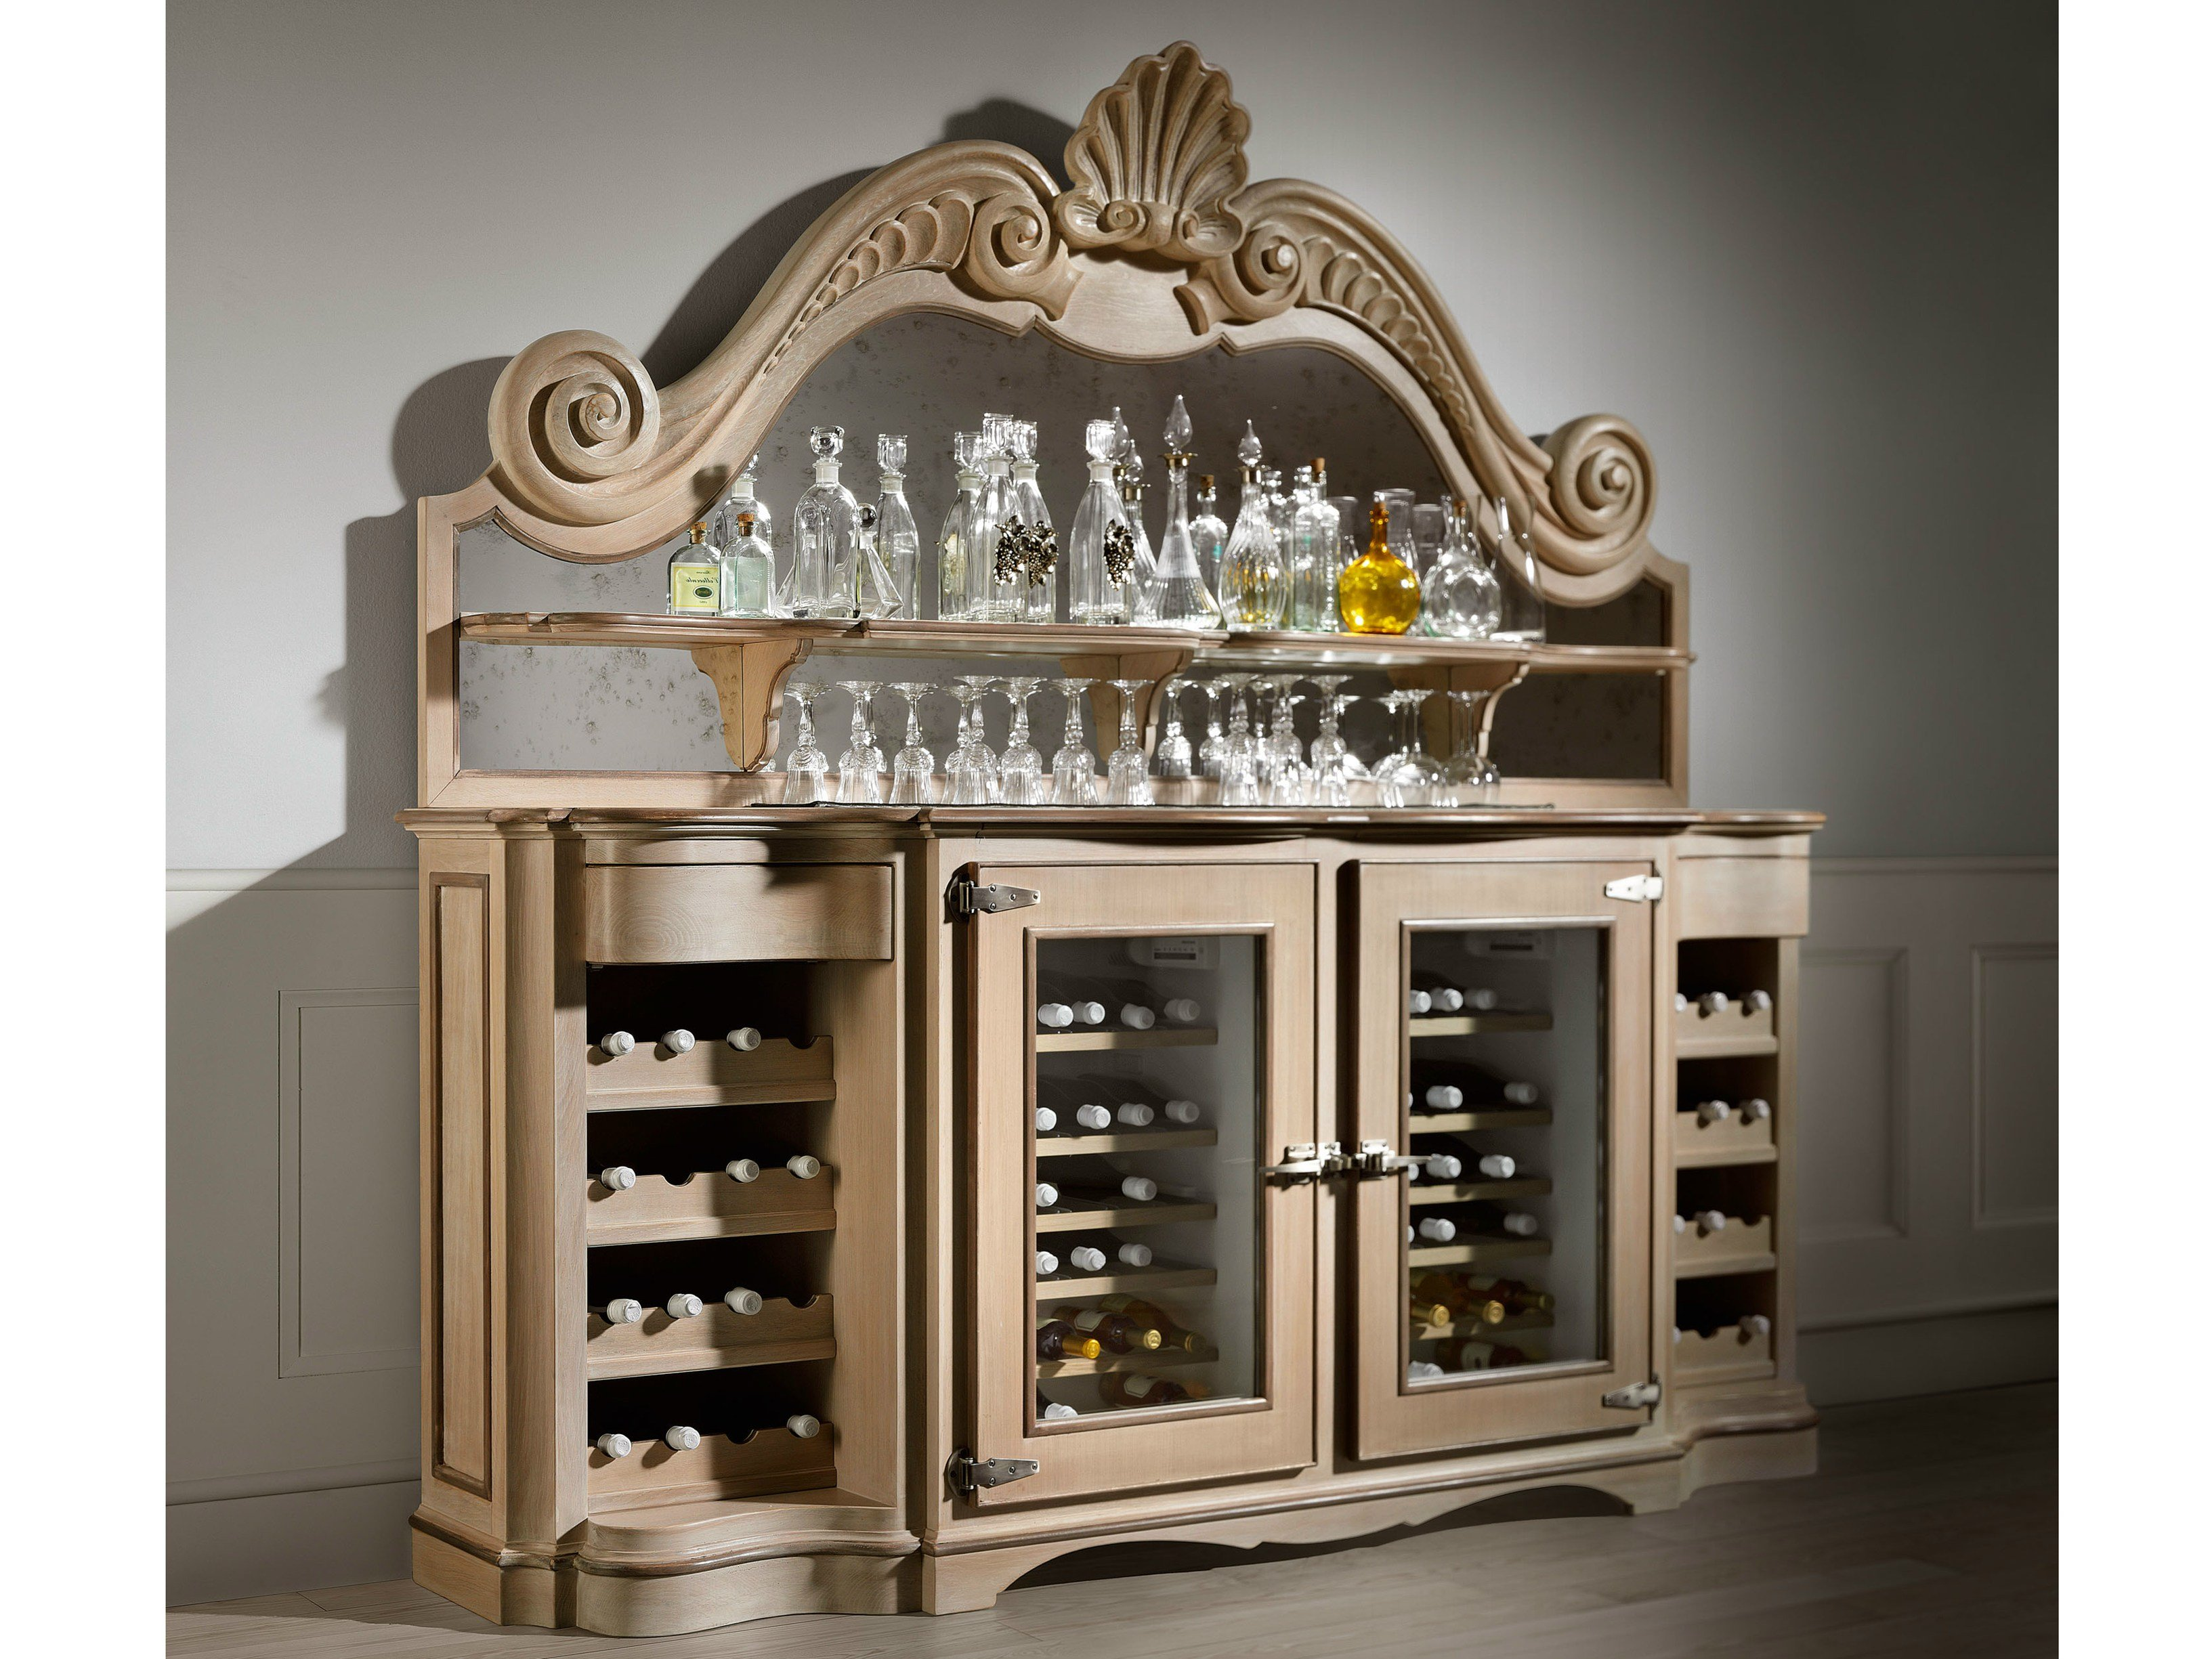 Cave vin meuble bar en bois oyster by l 39 ottocento for Meuble bar avec cave a vin